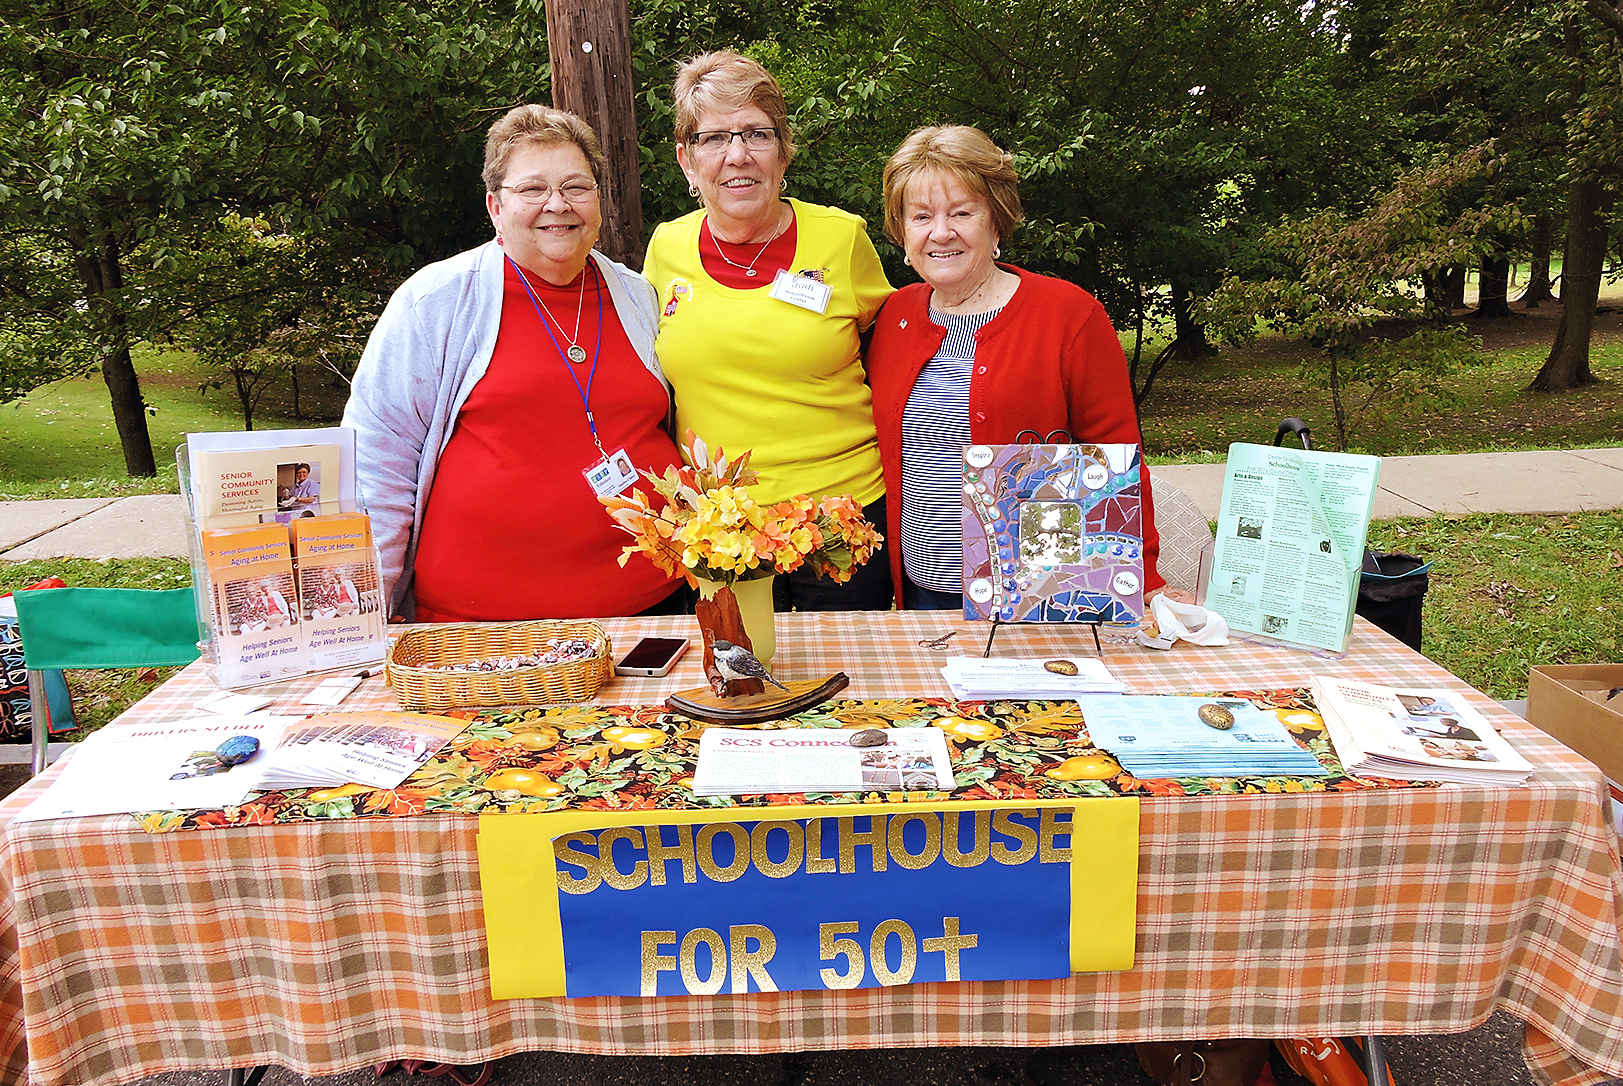 Schoolhouse For 50+ members Sandi Clancy, Judi Haines and Betty Schmucker distributed information at Glenolden's Community Day.